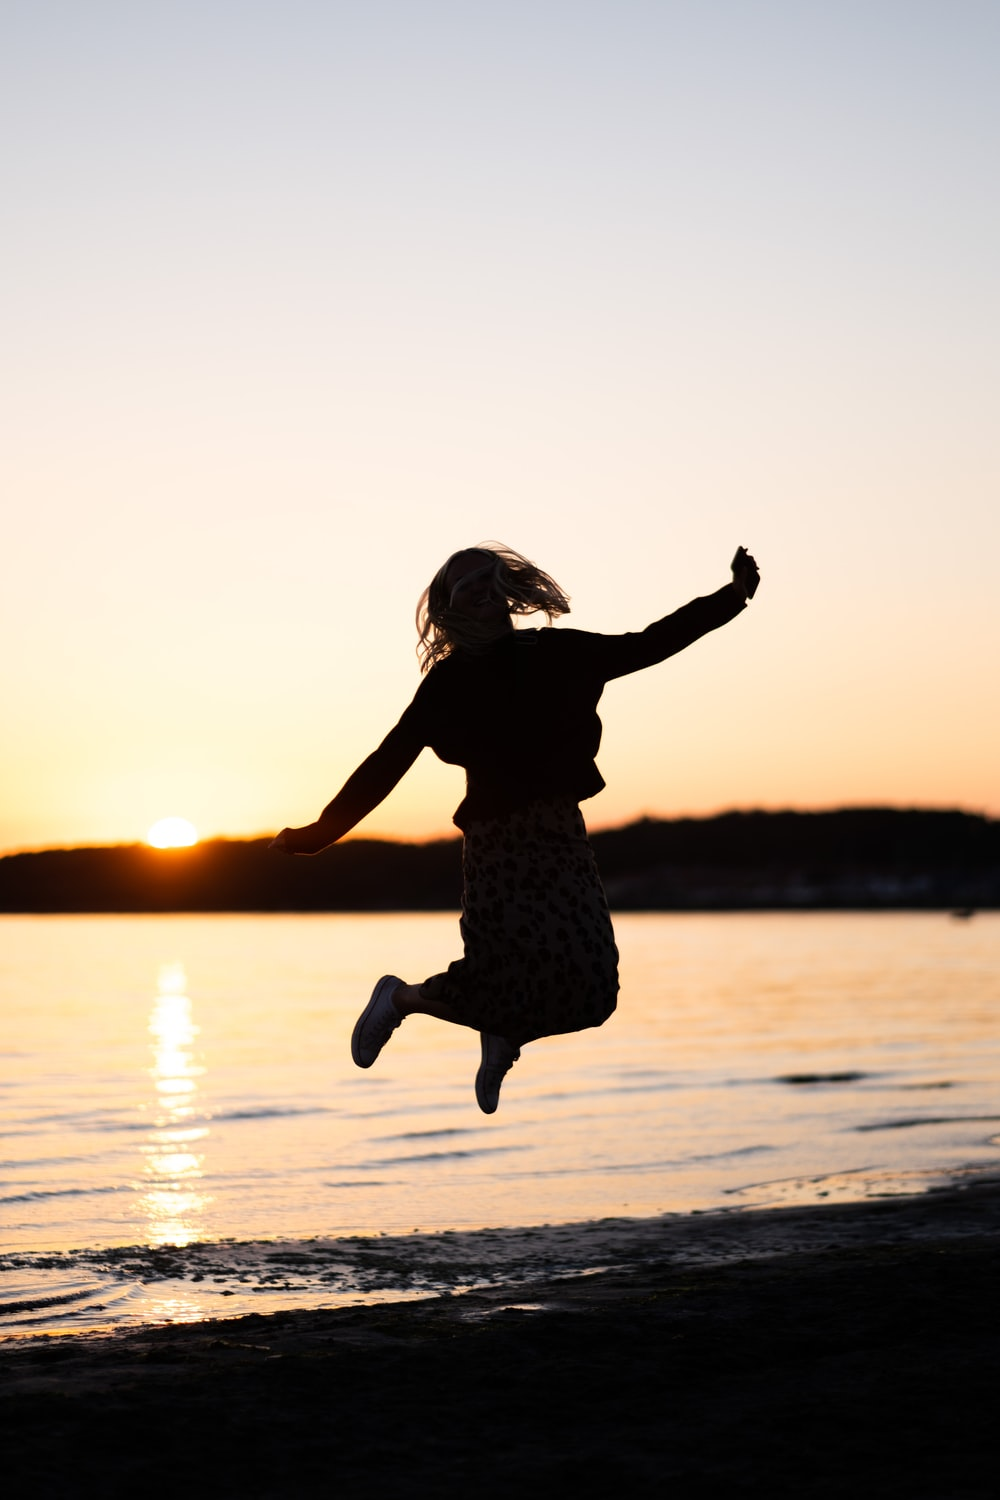 girl in black dress jumping on water during sunset